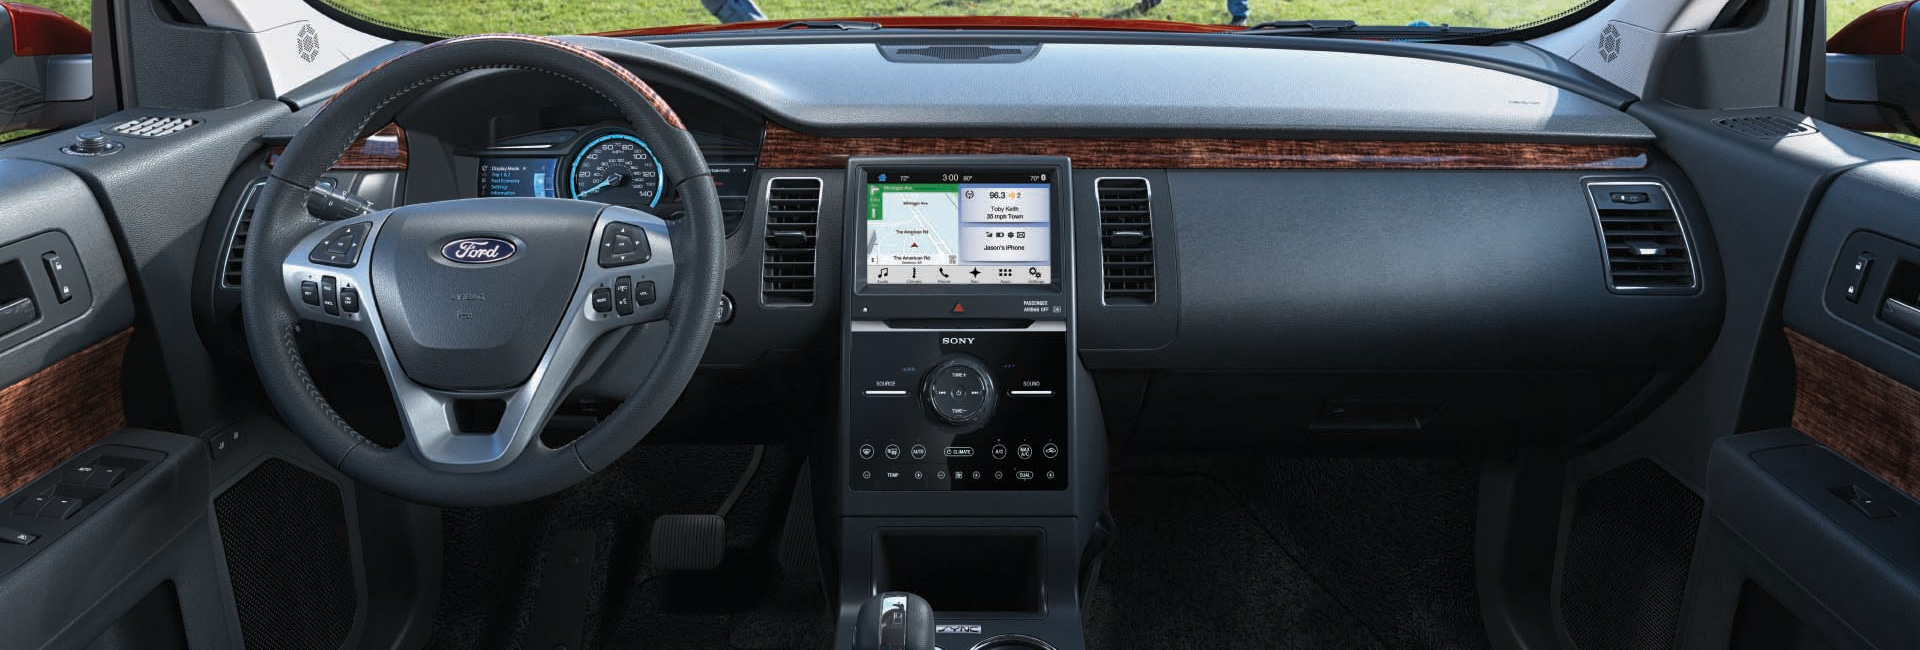 Ford Flex Interior Vehicle Features